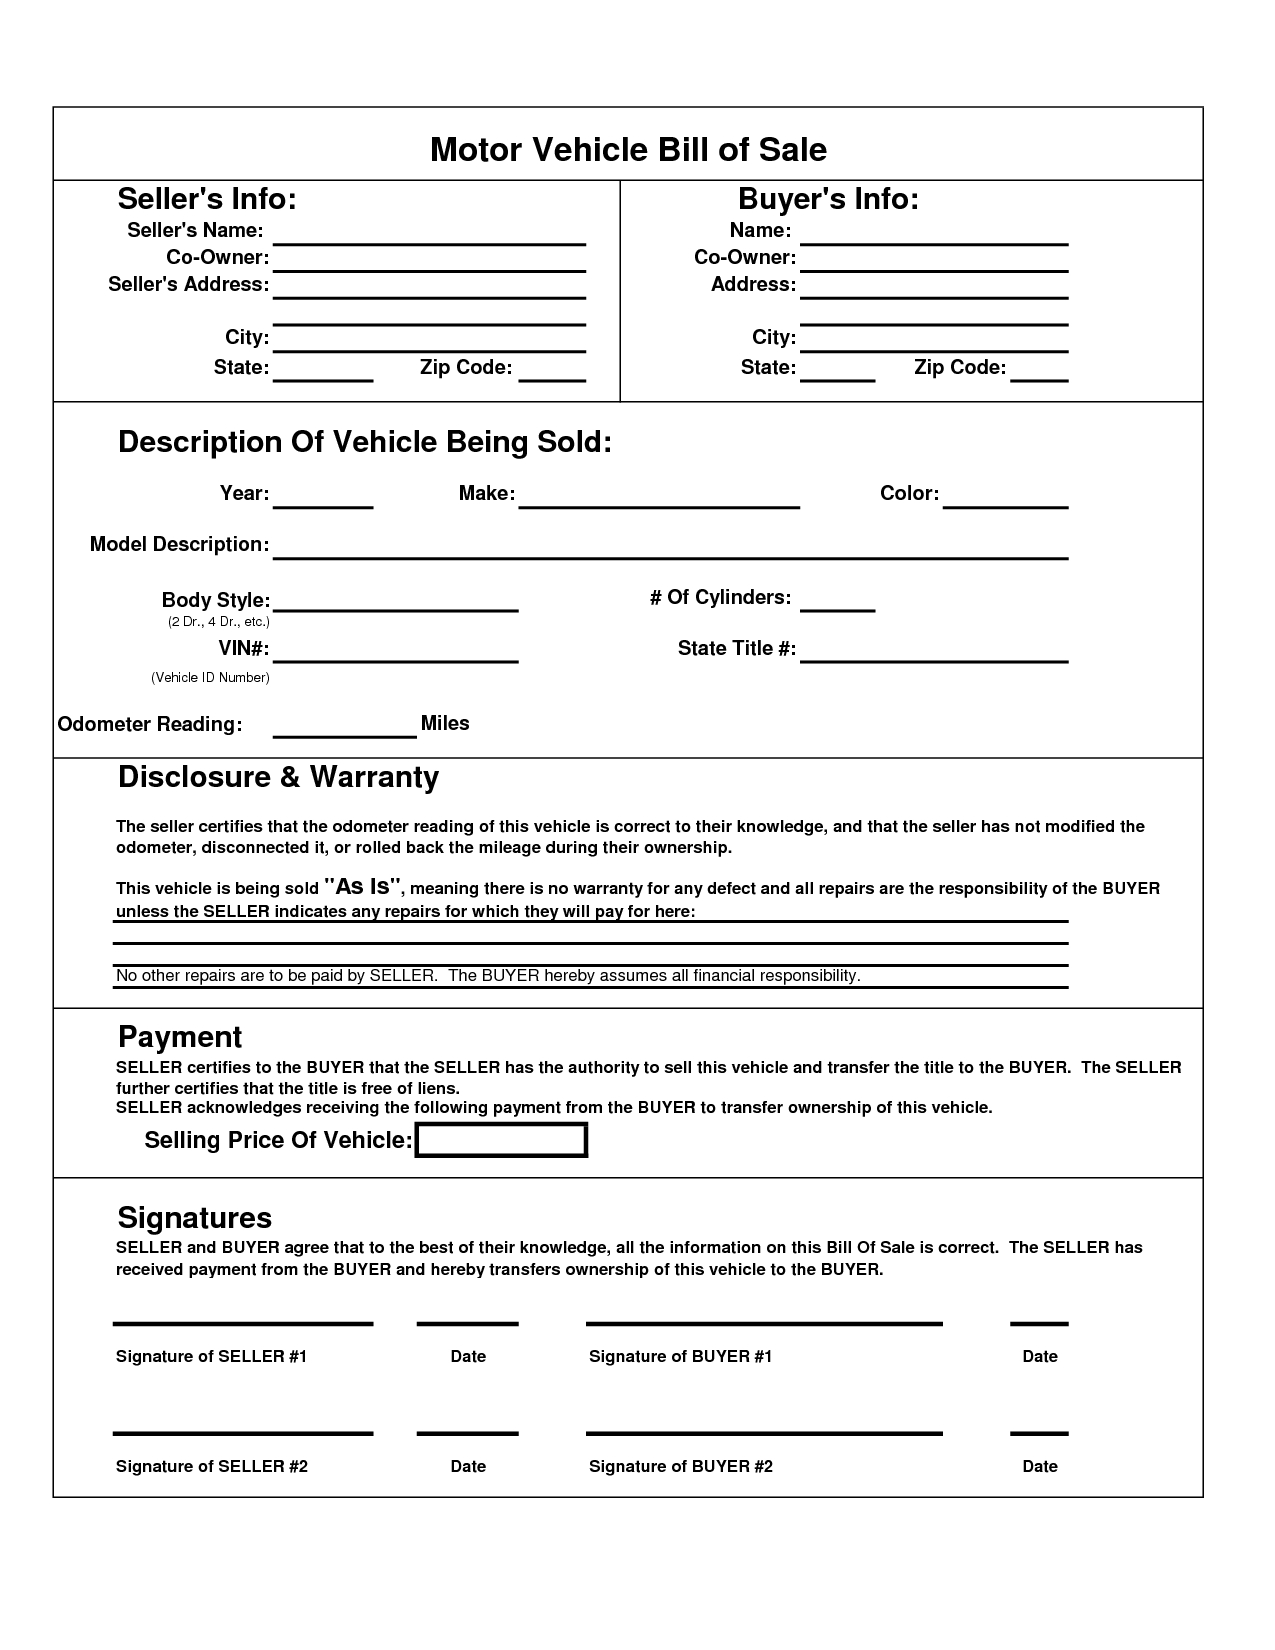 Texas Motor Vehicle Bill Sale Form | Books Worth Reading - Free Printable Vehicle Bill Of Sale